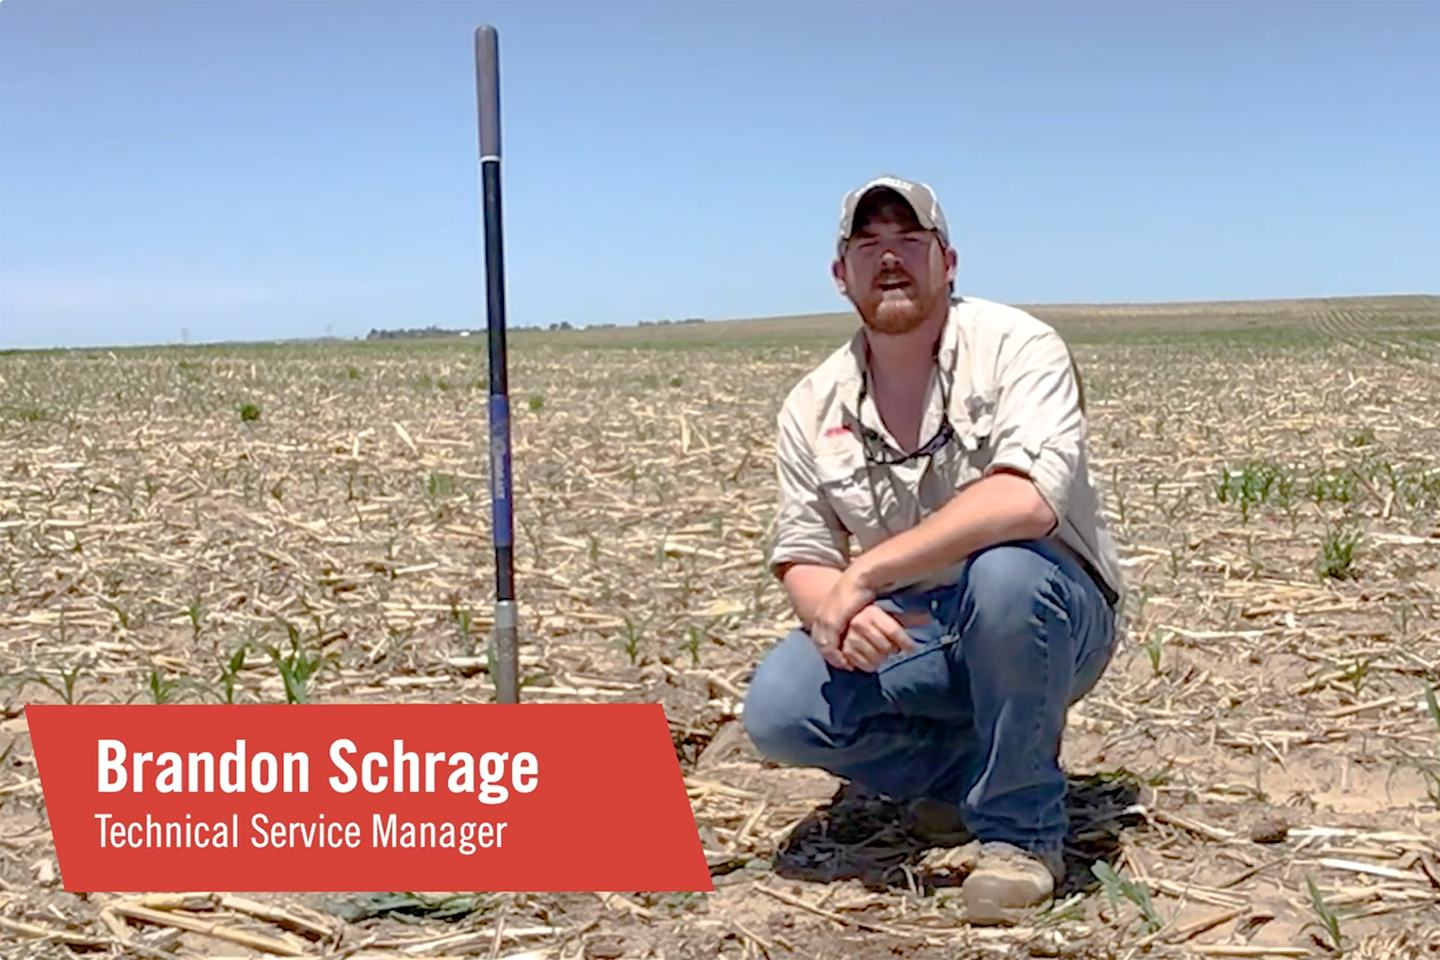 Brandon Schrage, Technical Service Manager